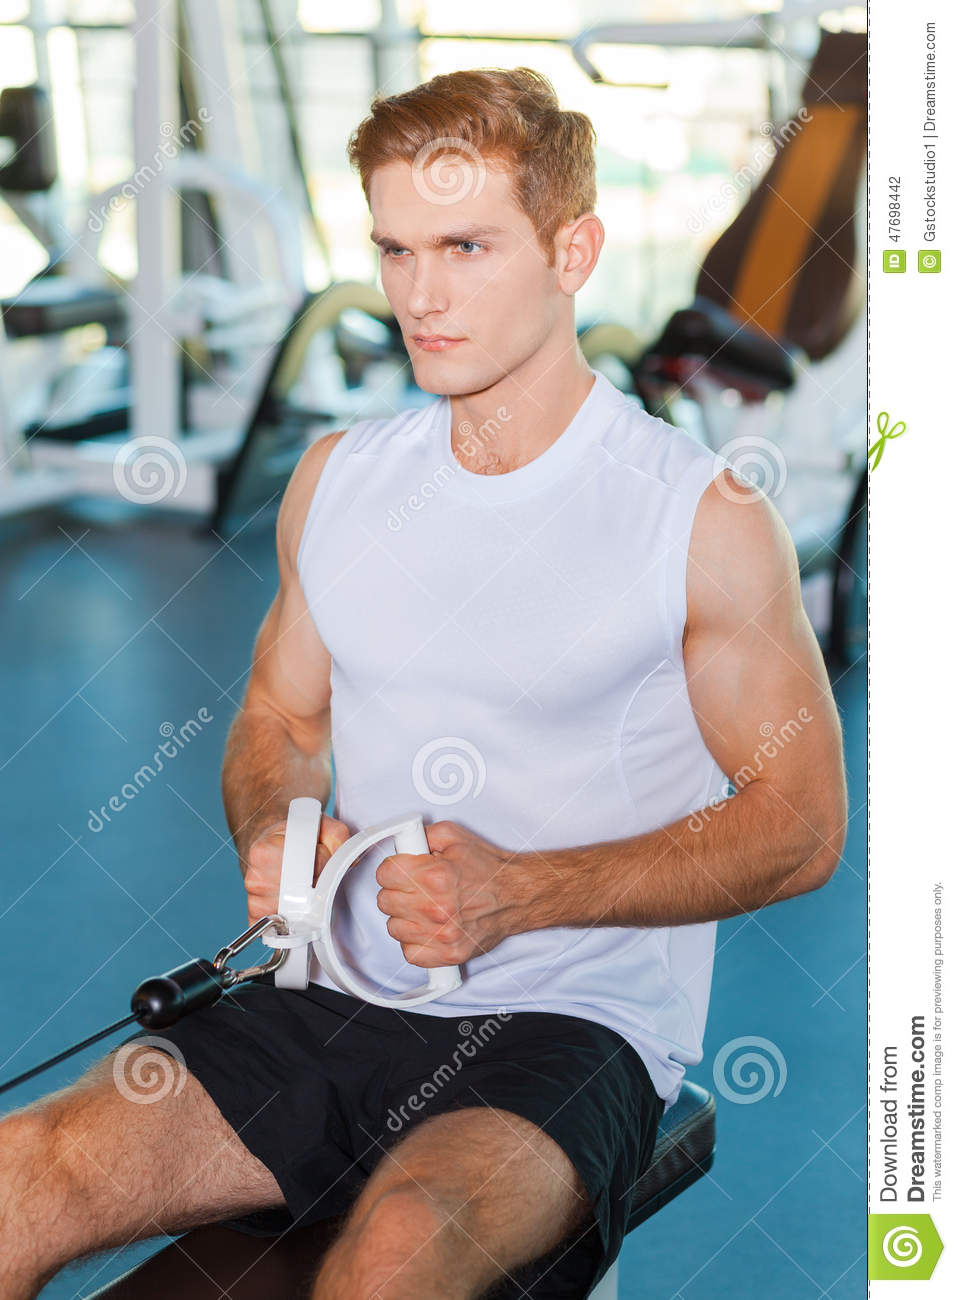 fitness men working out - photo #26